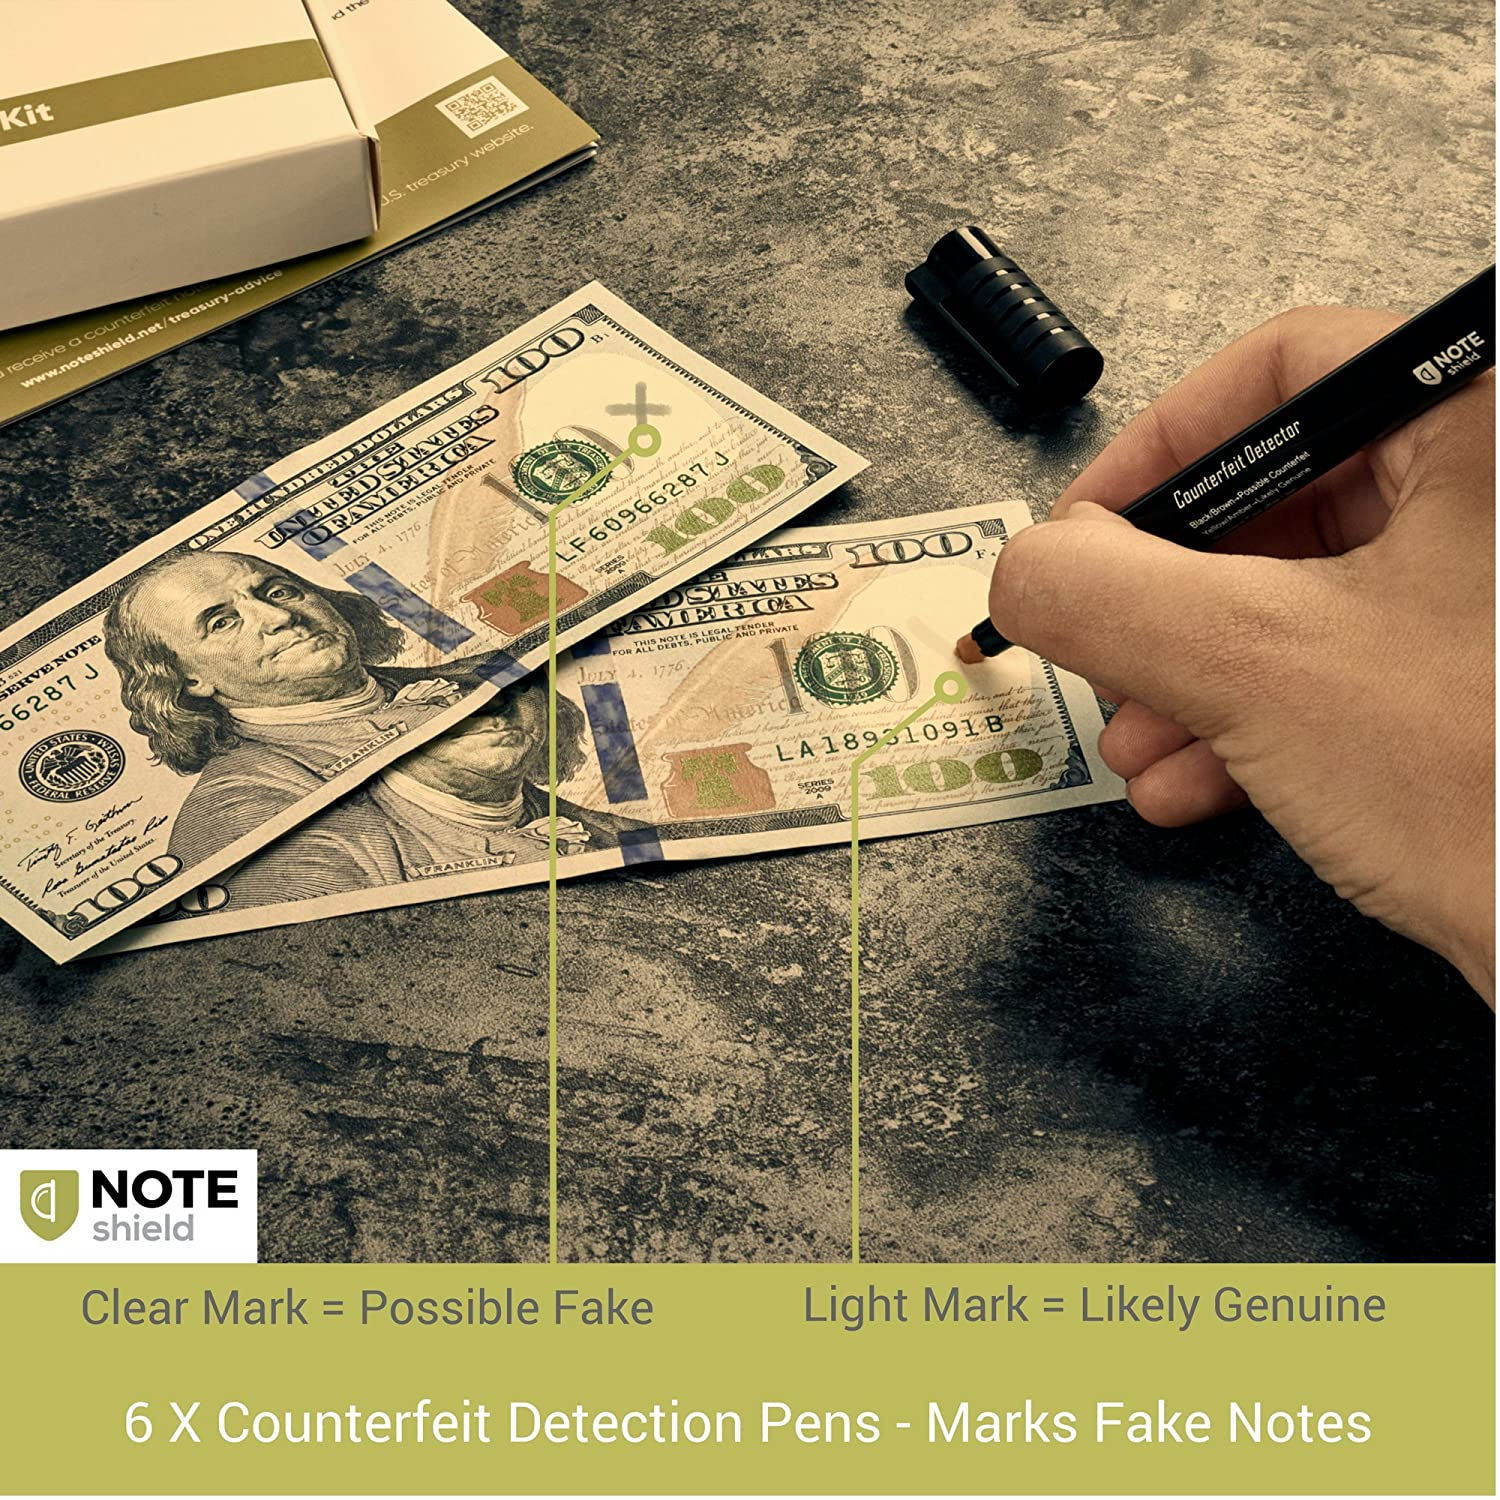 amazoncom noteshield counterfeit bill detector kit counterfeit money loss prevention small business security dollar tester set 6 x counterfeit